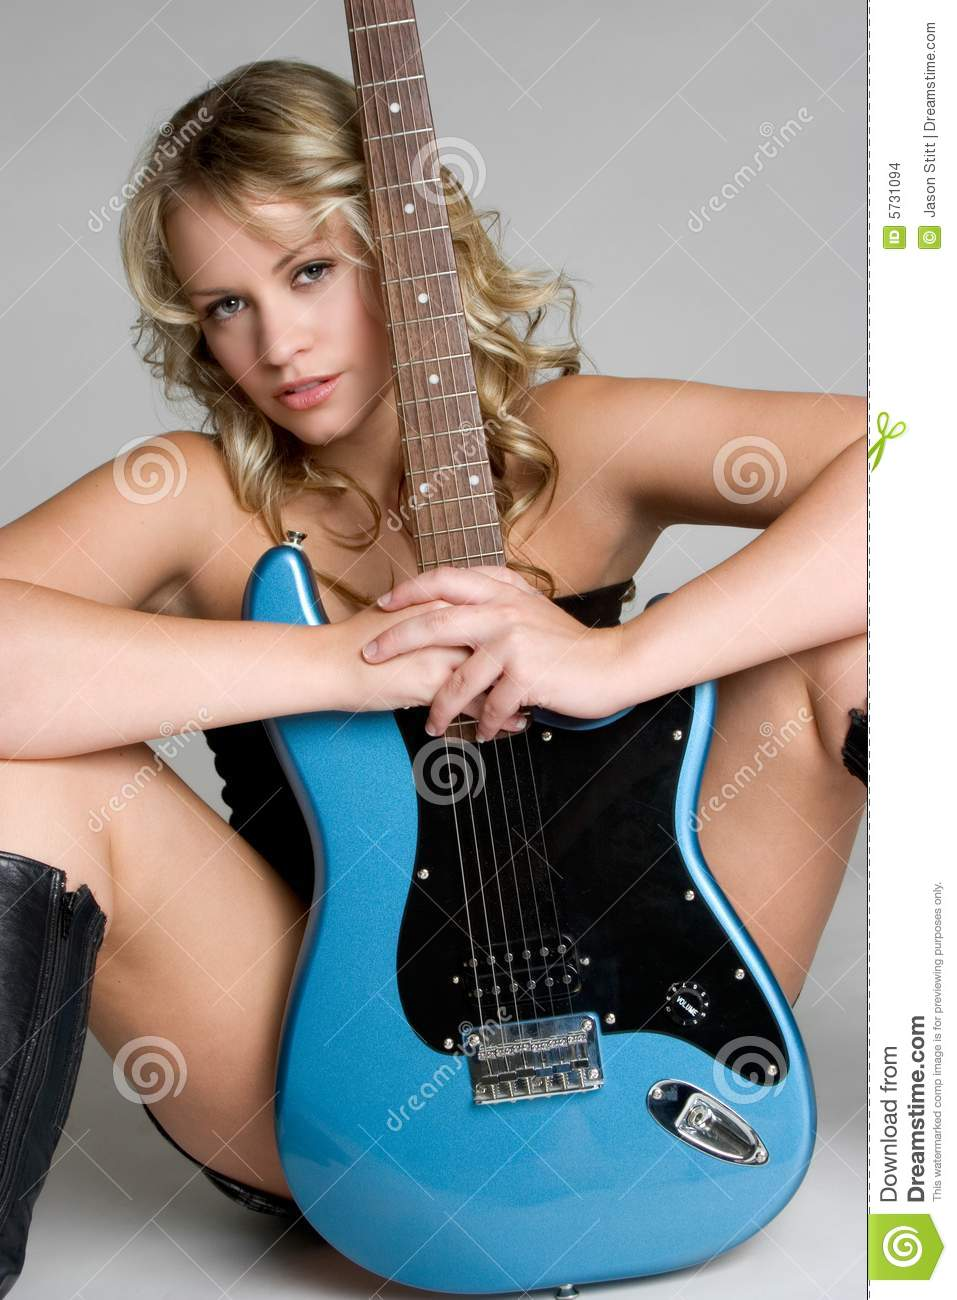 Completely naked the Hot girls guitar playing